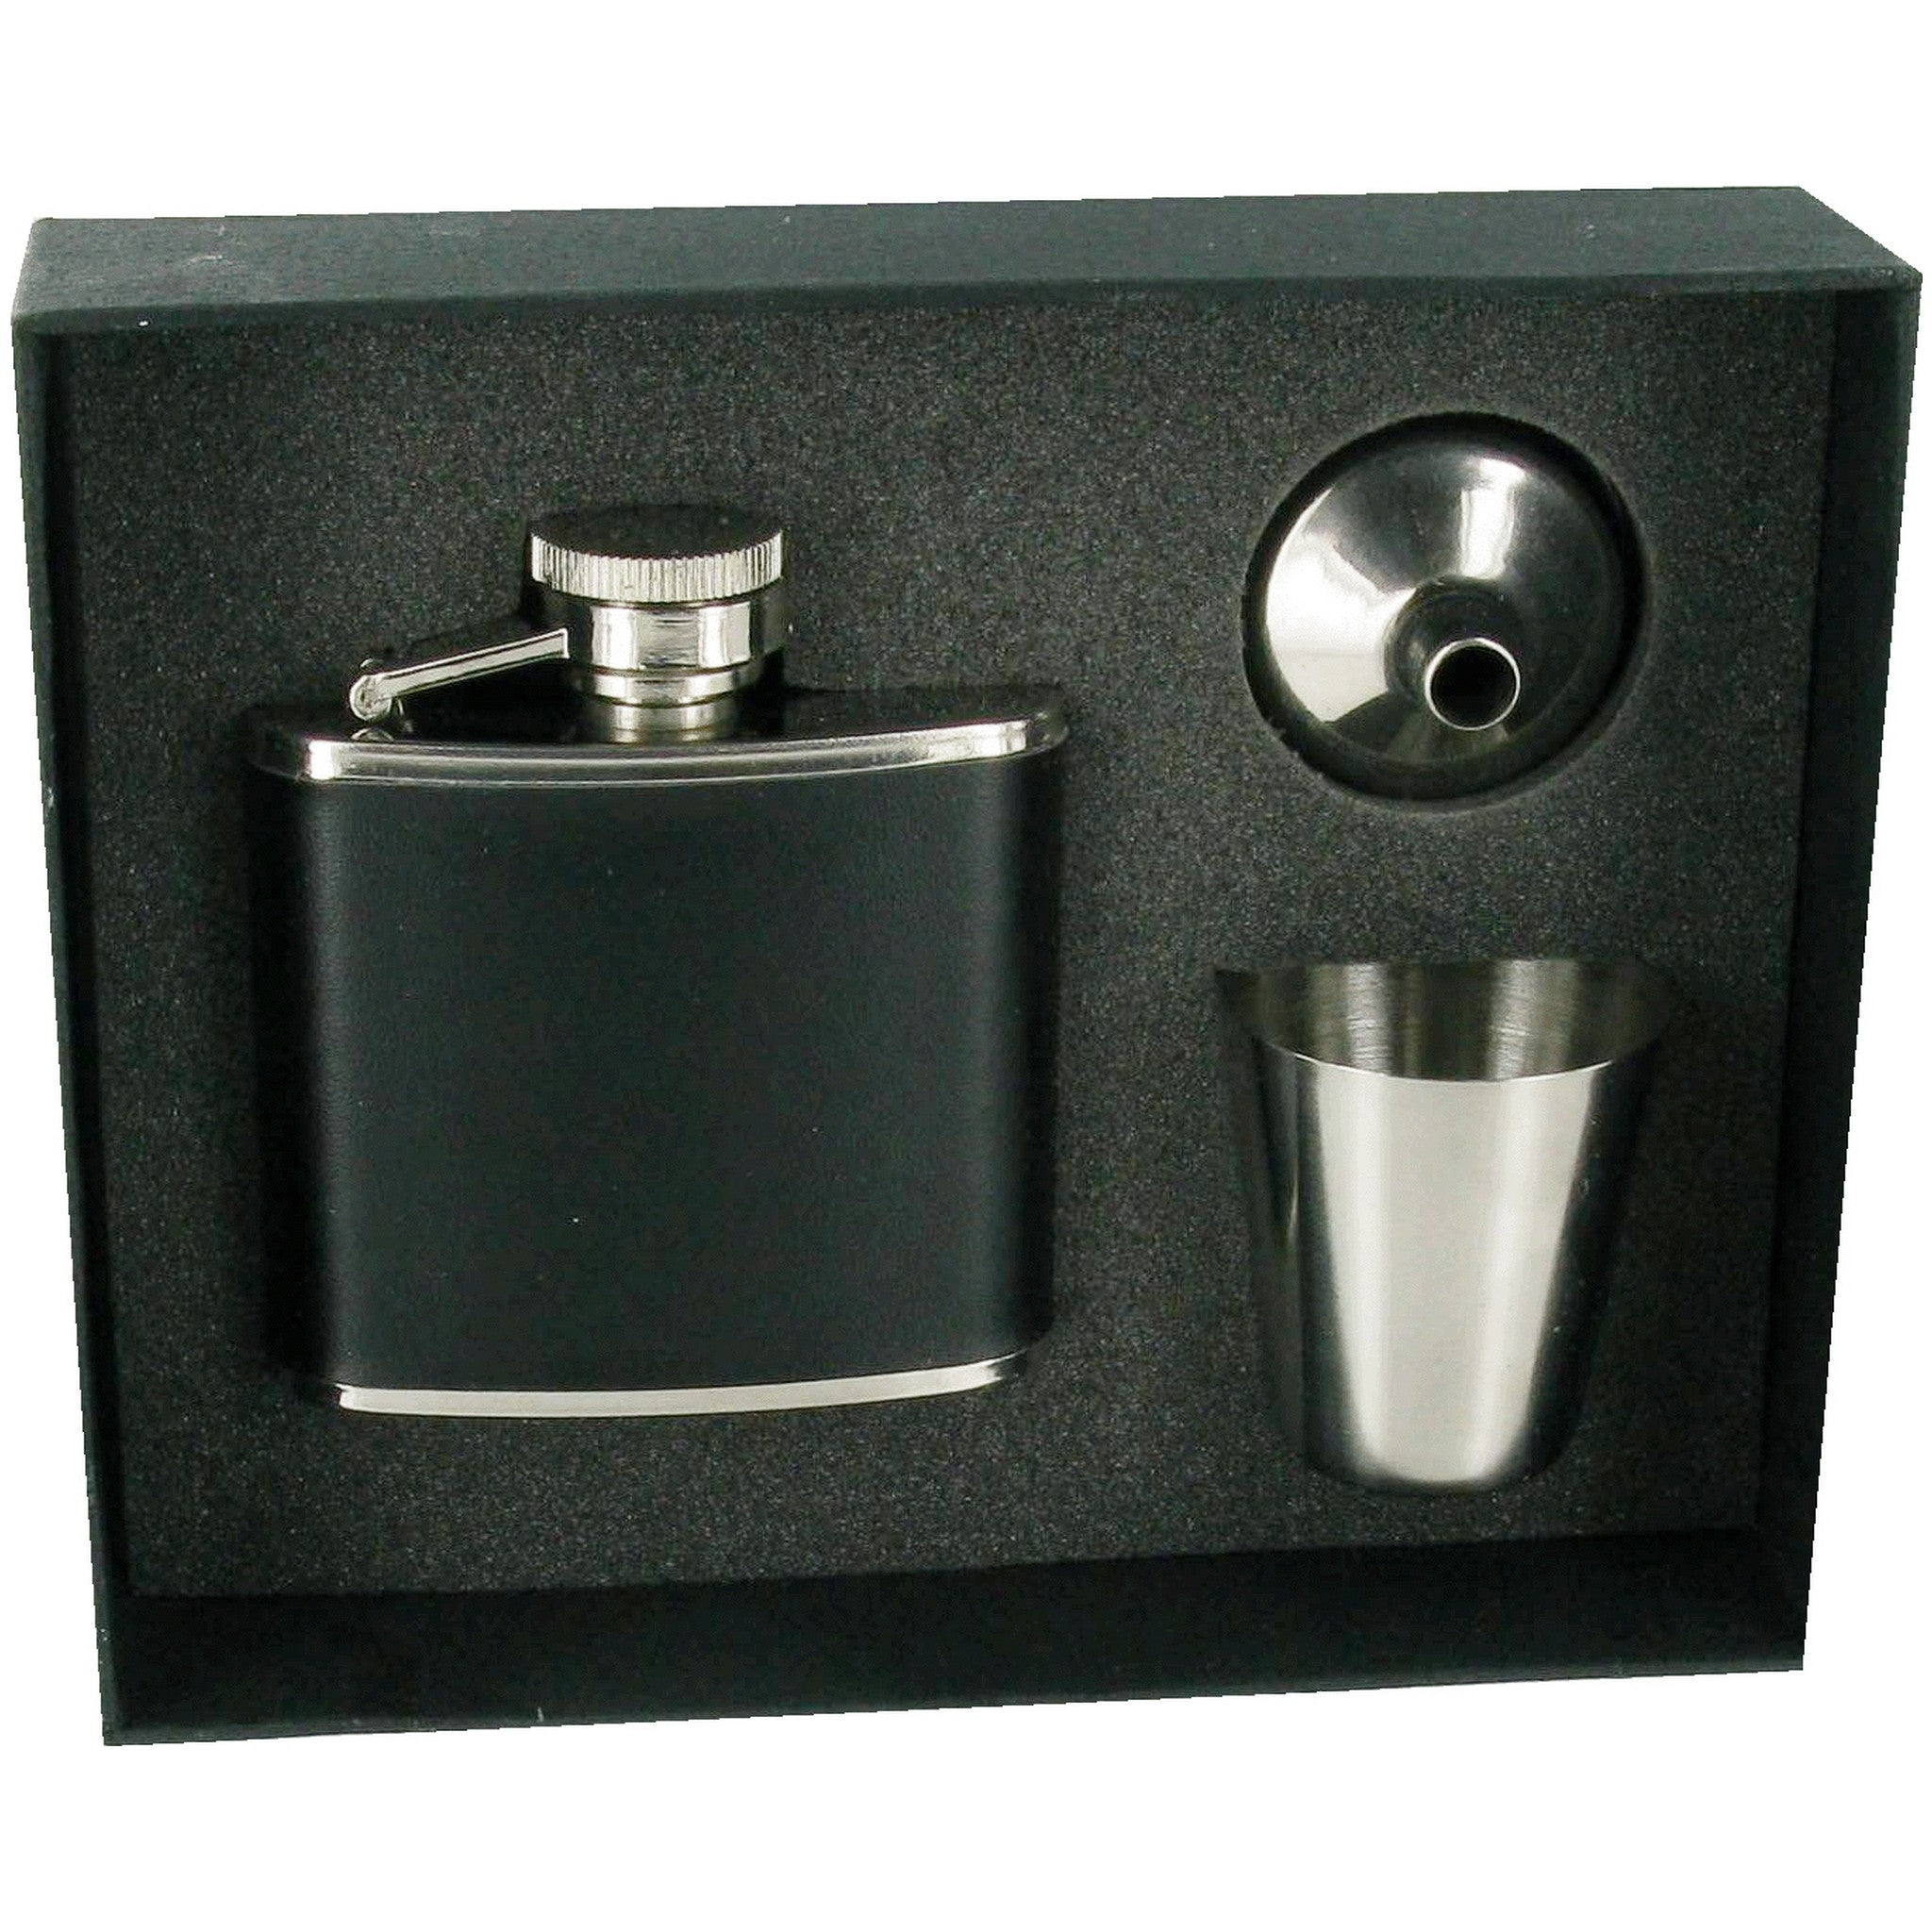 Black PU Covered Hip Flask 2oz, Funnel & Cup Set